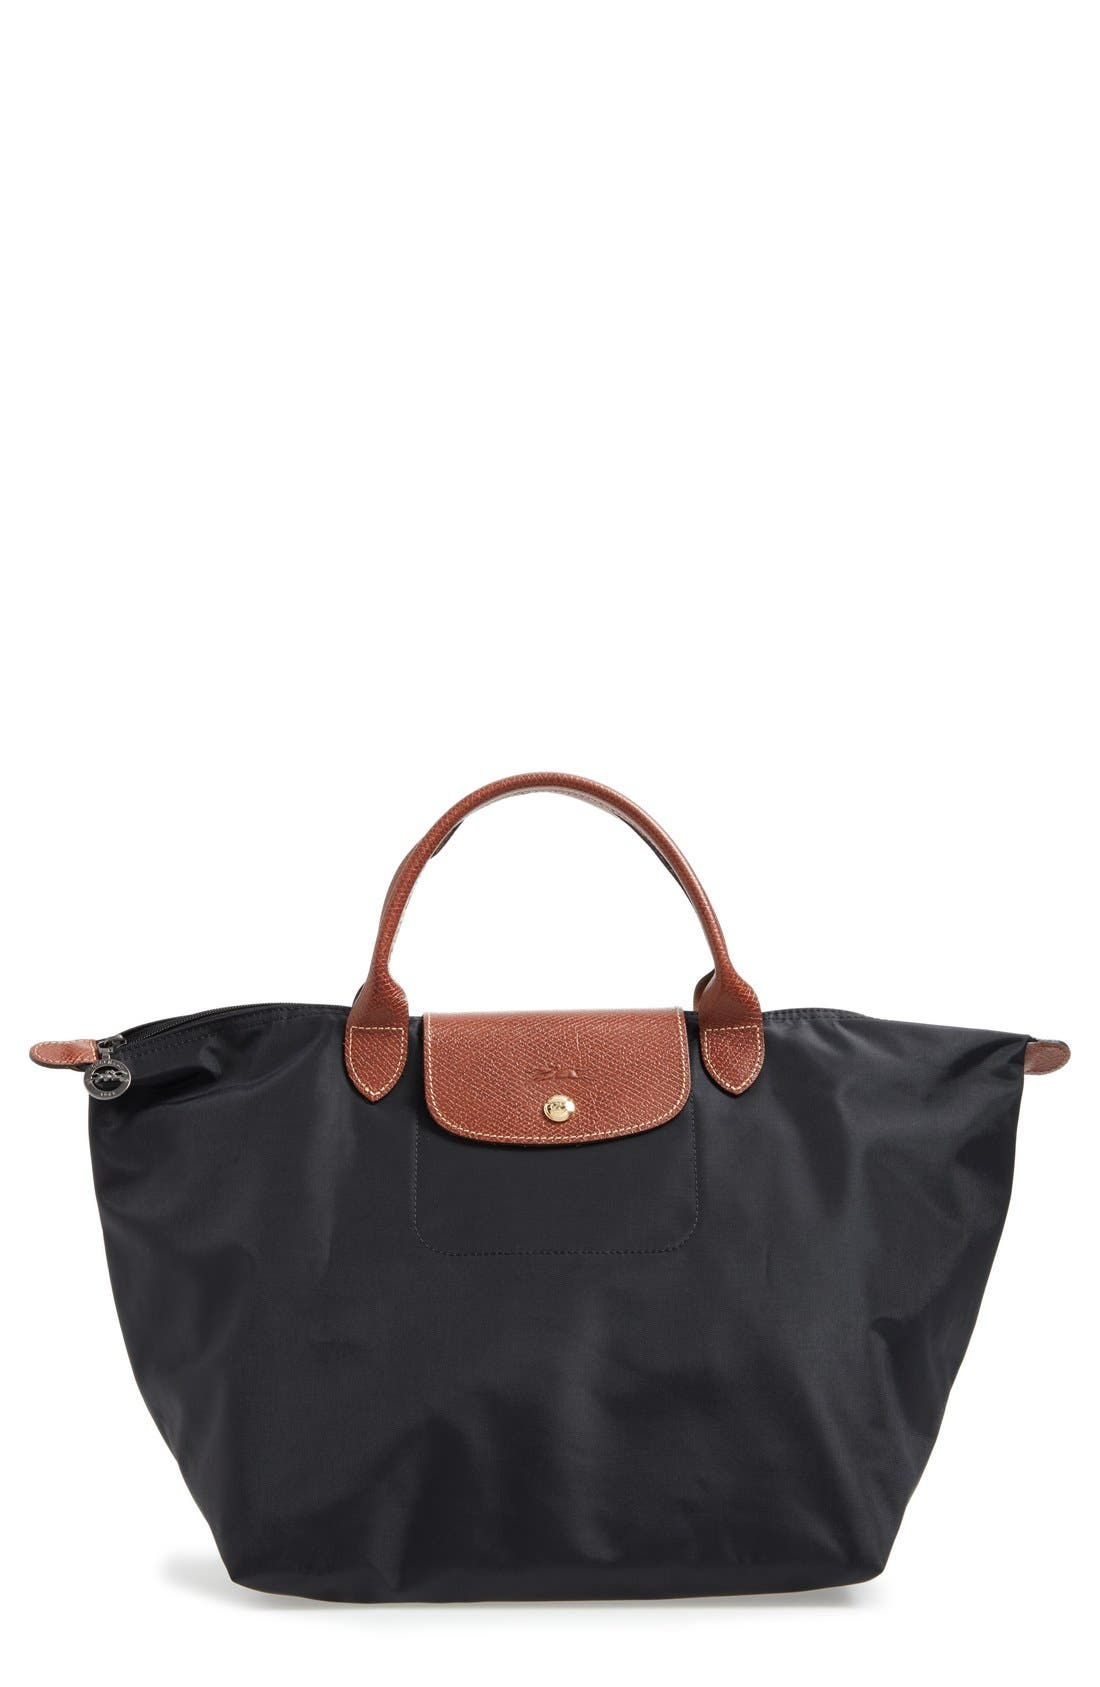 Main Image - Longchamp 'Medium Le Pliage' Tote